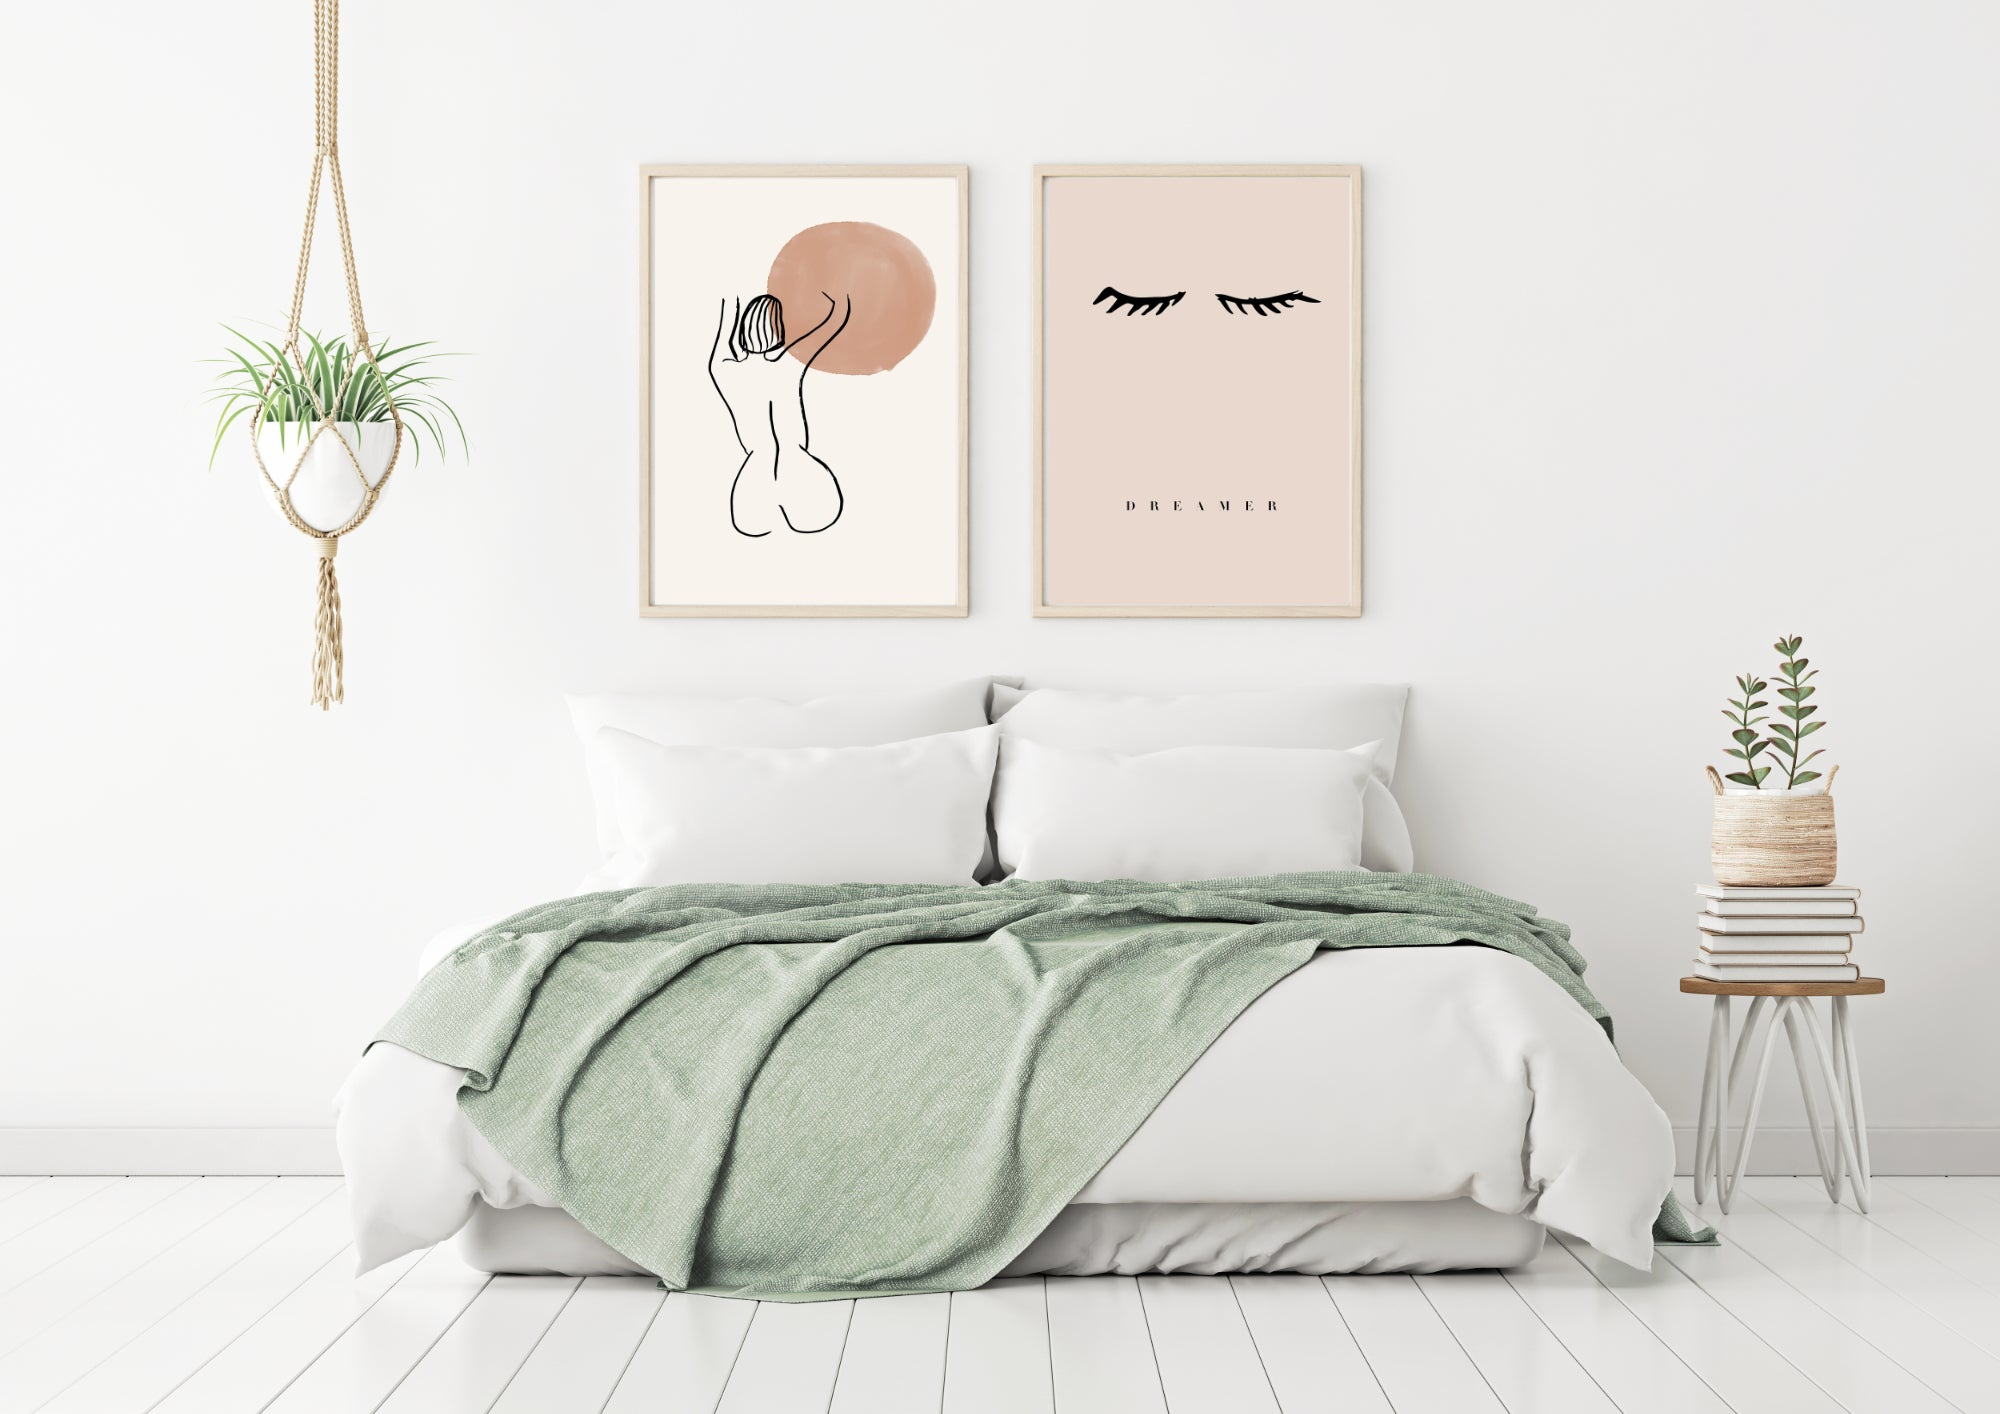 Art for interior designers - two art prints in a bedroom setting